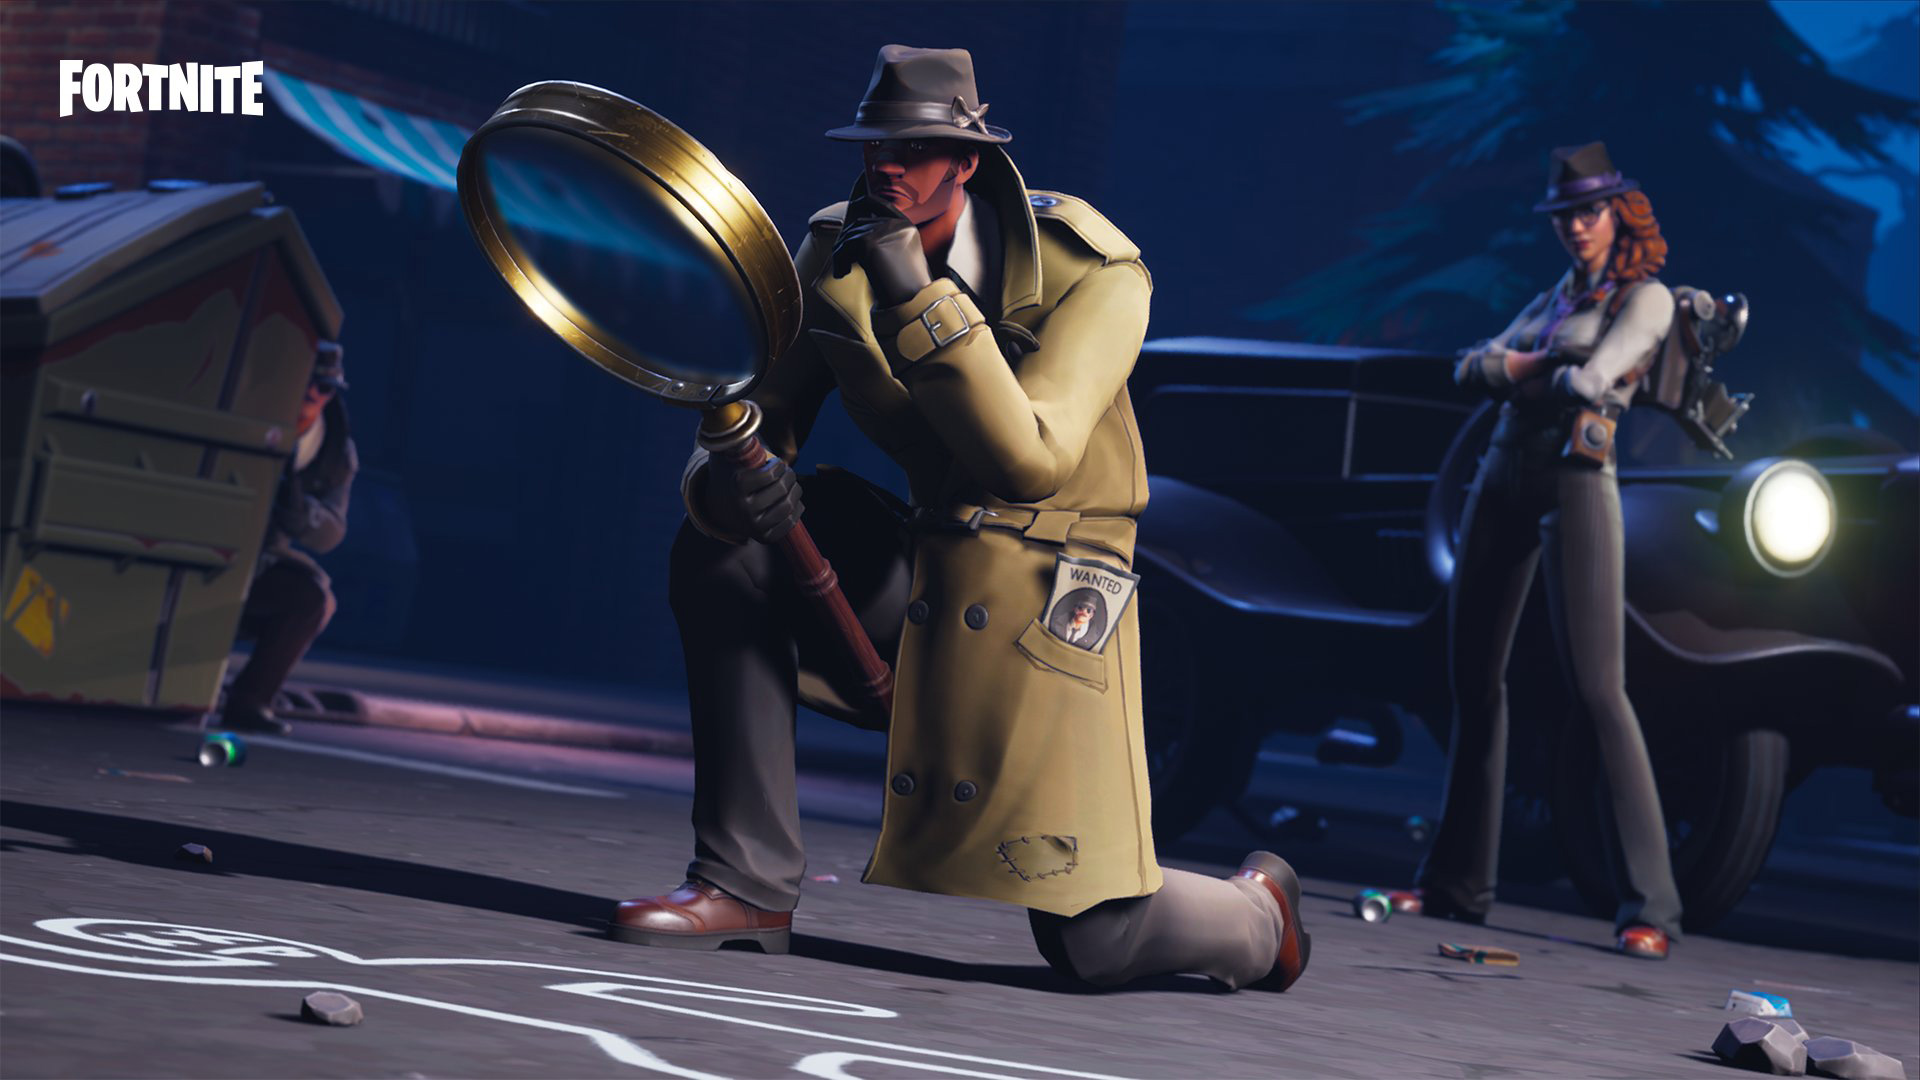 Fortnite Sleuth Skin   Pro Game Guides 1920x1080